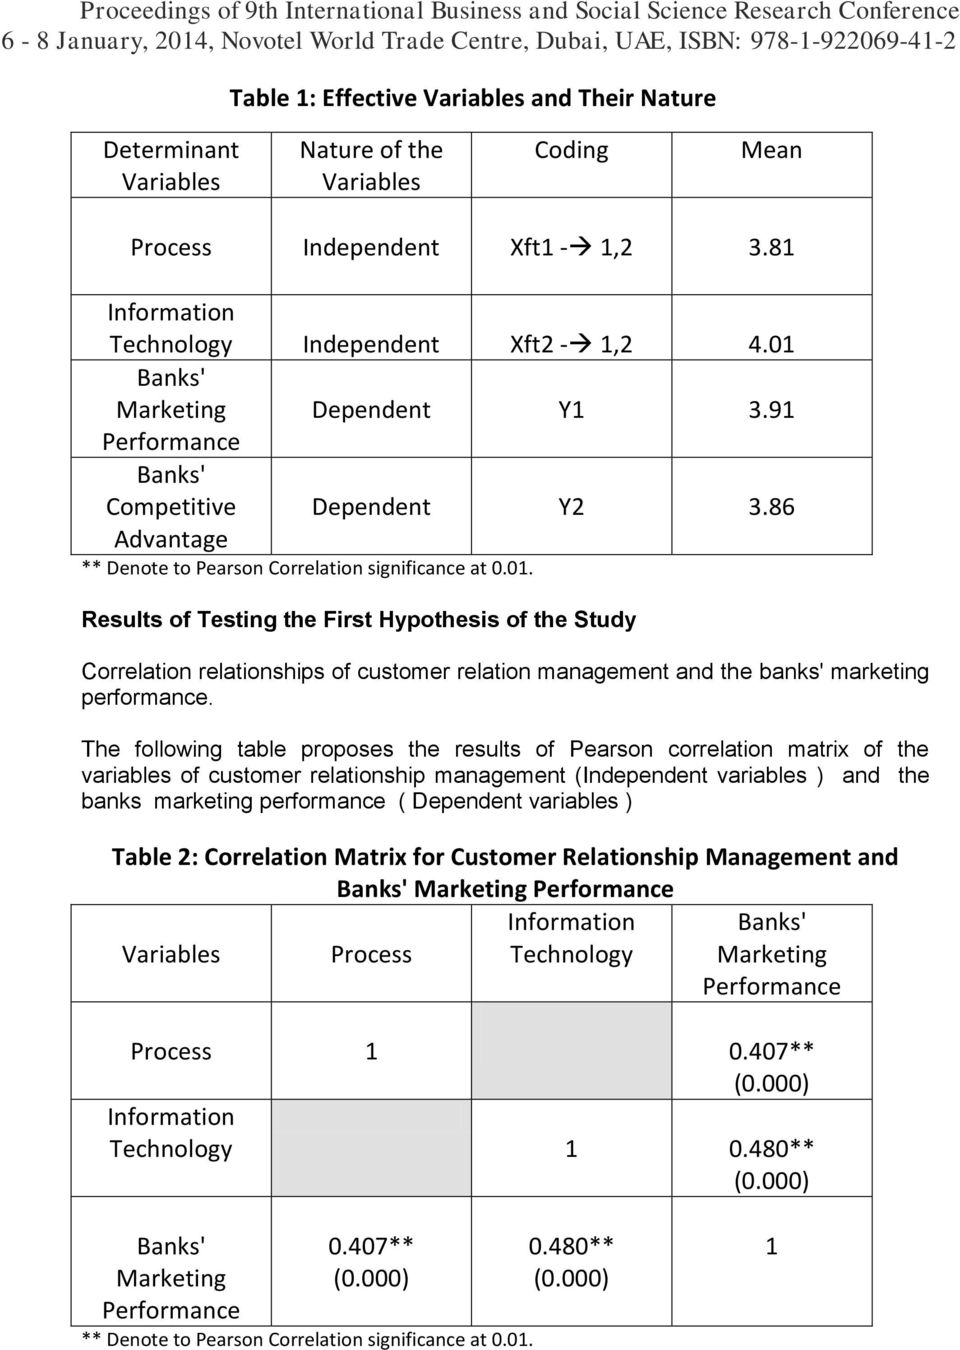 The following table proposes the results of Pearson correlation matrix of the variables of customer relationship management (Independent variables ) and the banks marketing performance ( Dependent